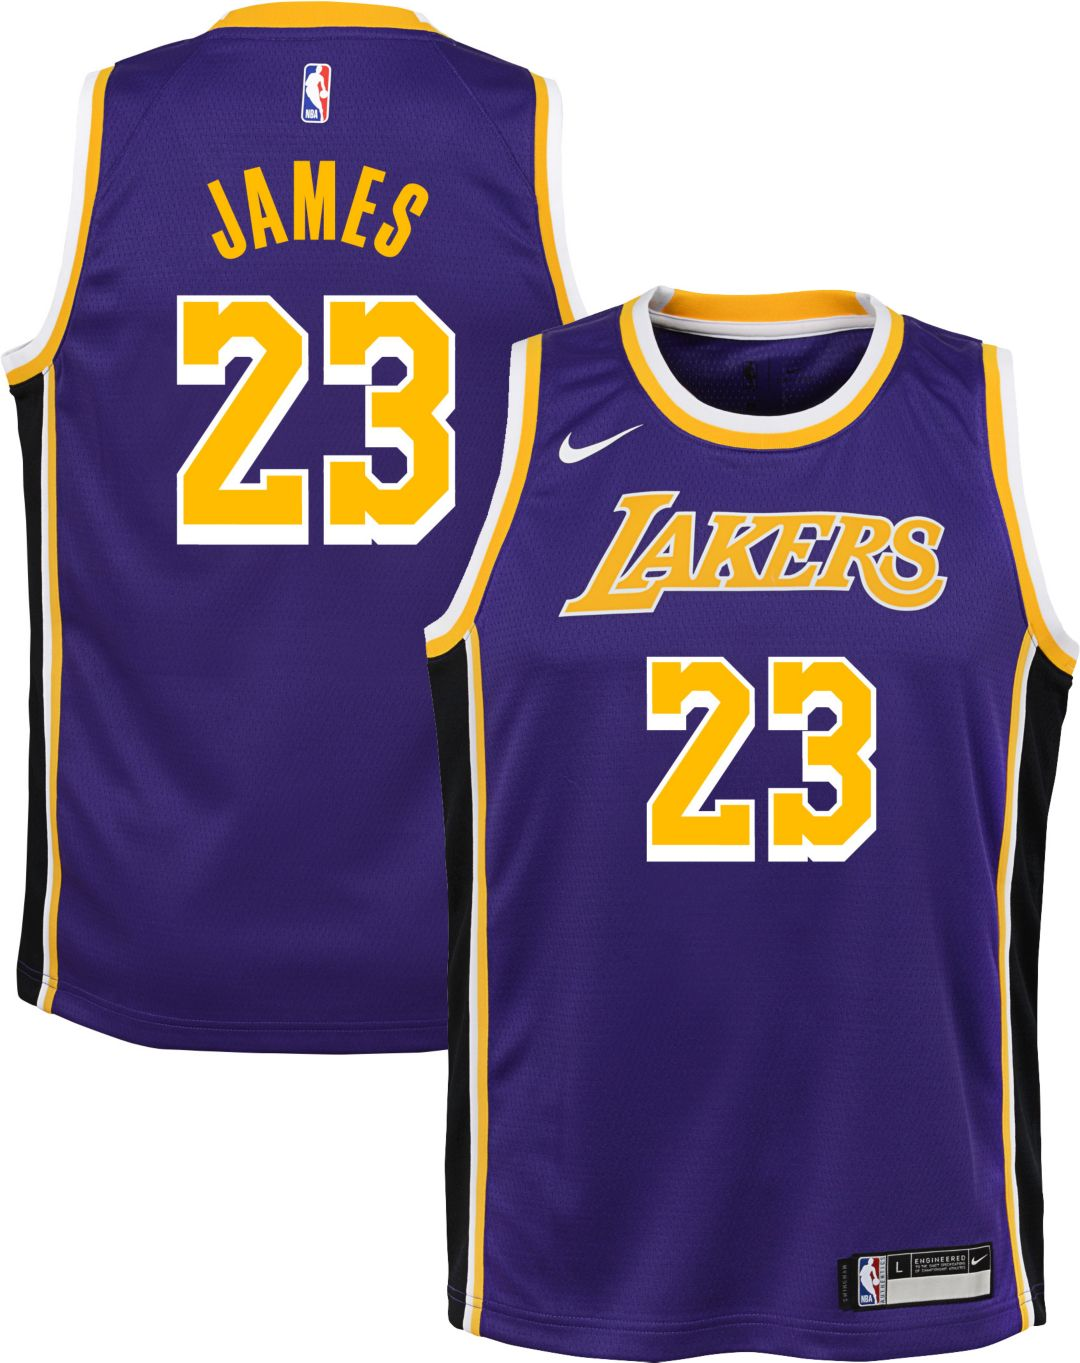 more photos f5bac 9d2f2 Nike Youth Los Angeles Lakers LeBron James Dri-FIT Purple Swingman Jersey